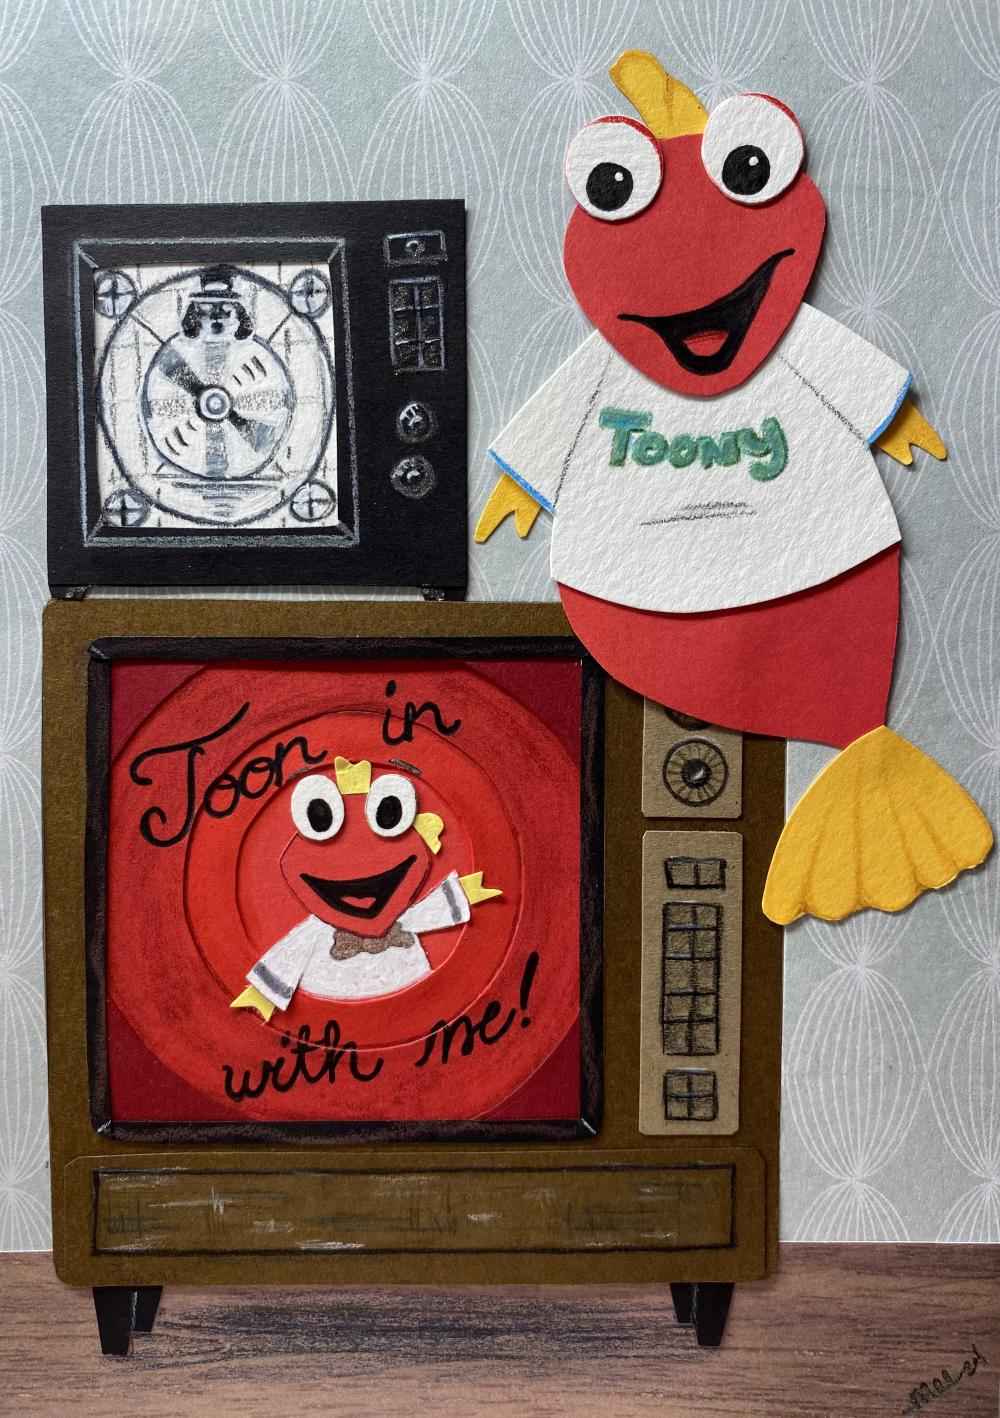 Saturday morning cartoons on weekdays? Doesn't get better than Toony and the gang!